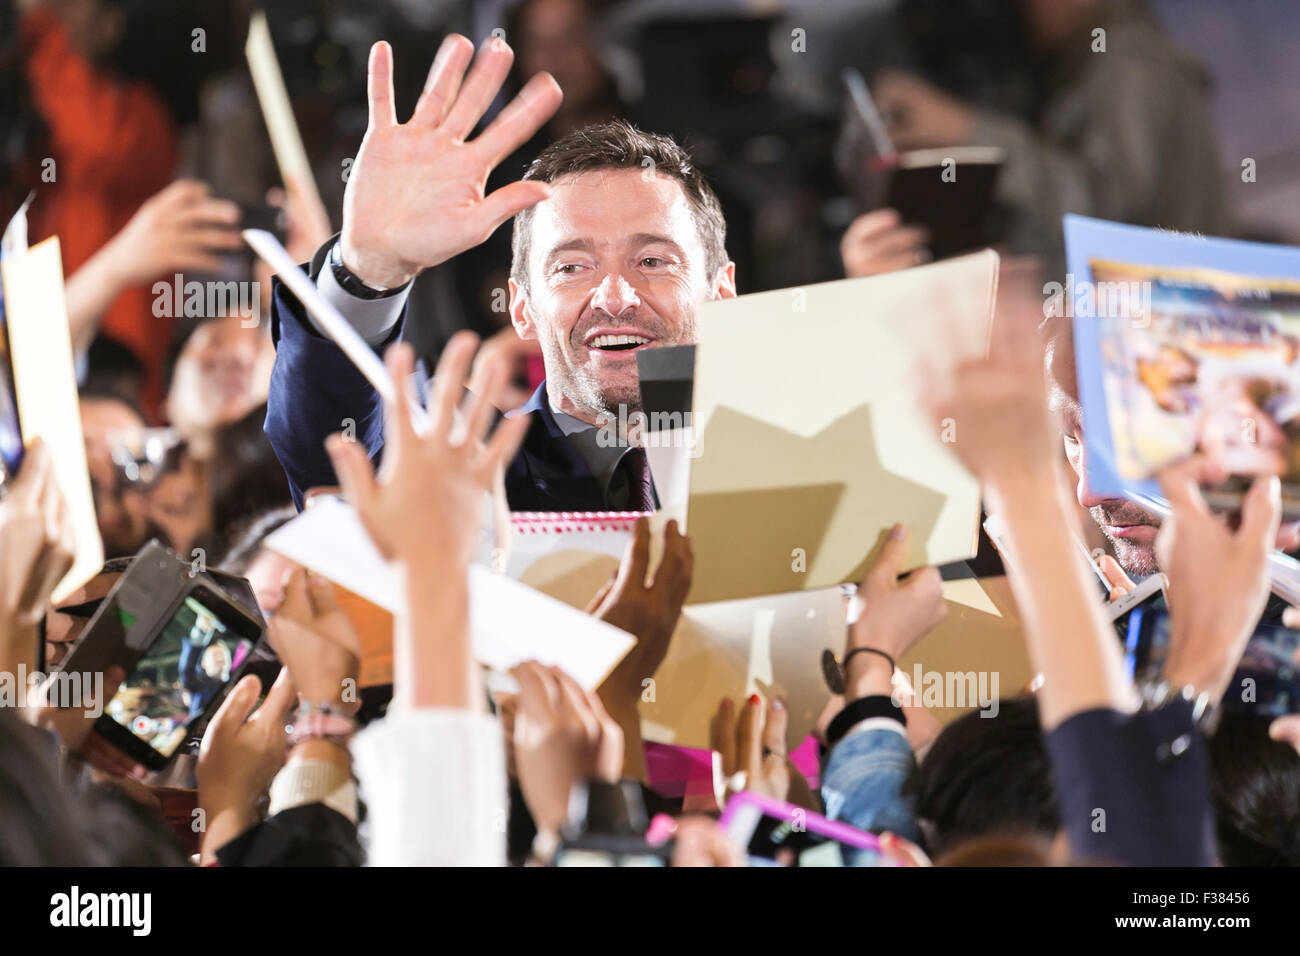 Tokyo, Japan. 1st October, 2015. Australian actor Hugh Jackman greets fans during the Japanese premiere for the - Stock Image